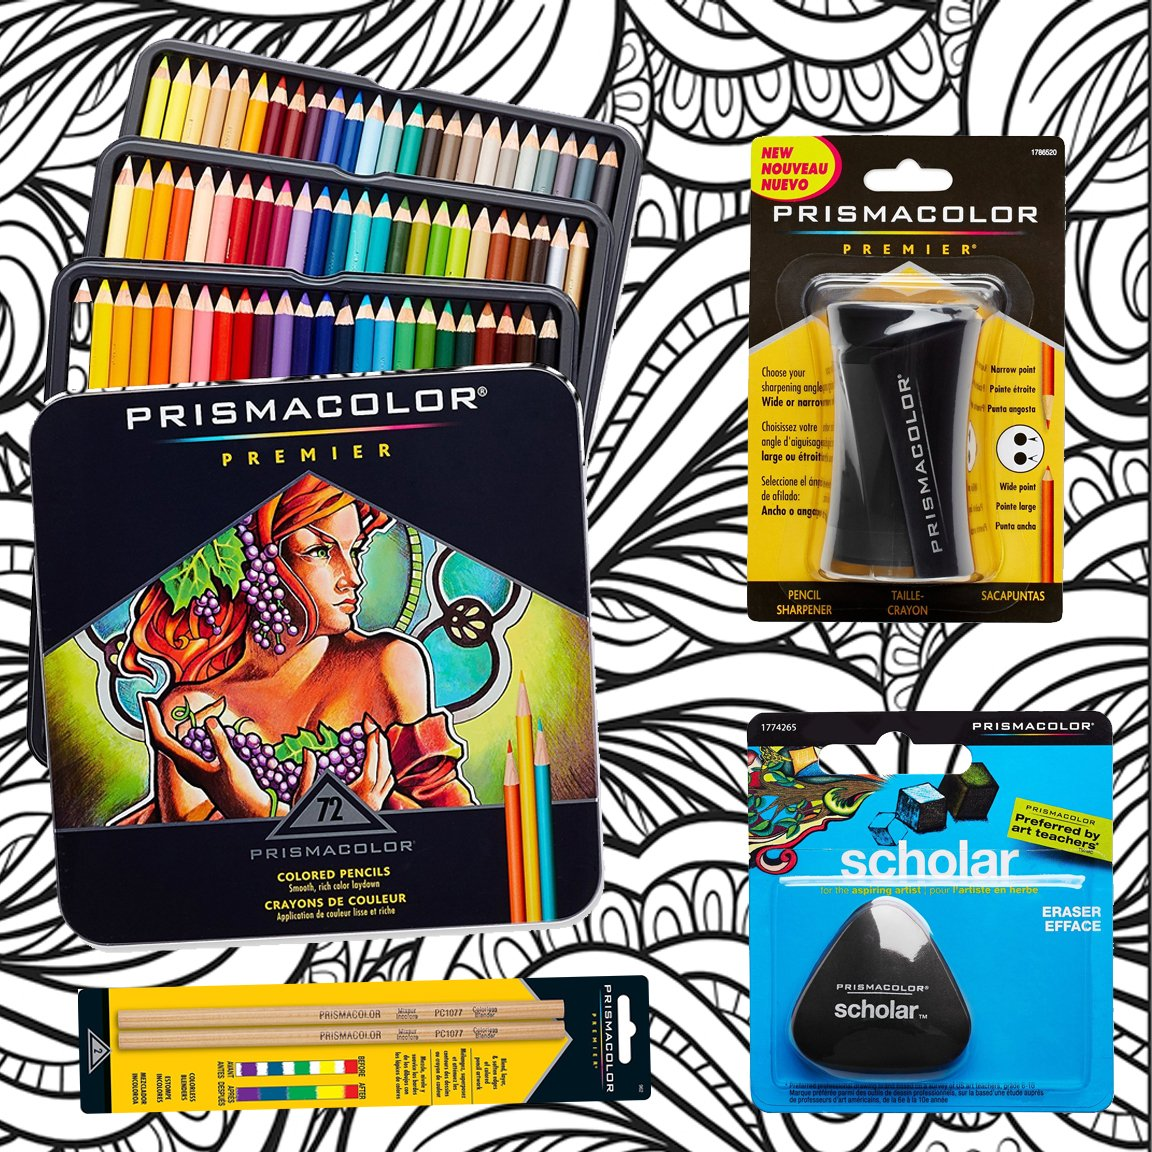 Prismacolor 72-Count Colored Pencils, Triangular Scholar Pencil Eraser, Premier Pencil Sharpener, Colorless Blender Pencils, and CSS Adult Coloring Book by Prismacolor (Image #1)